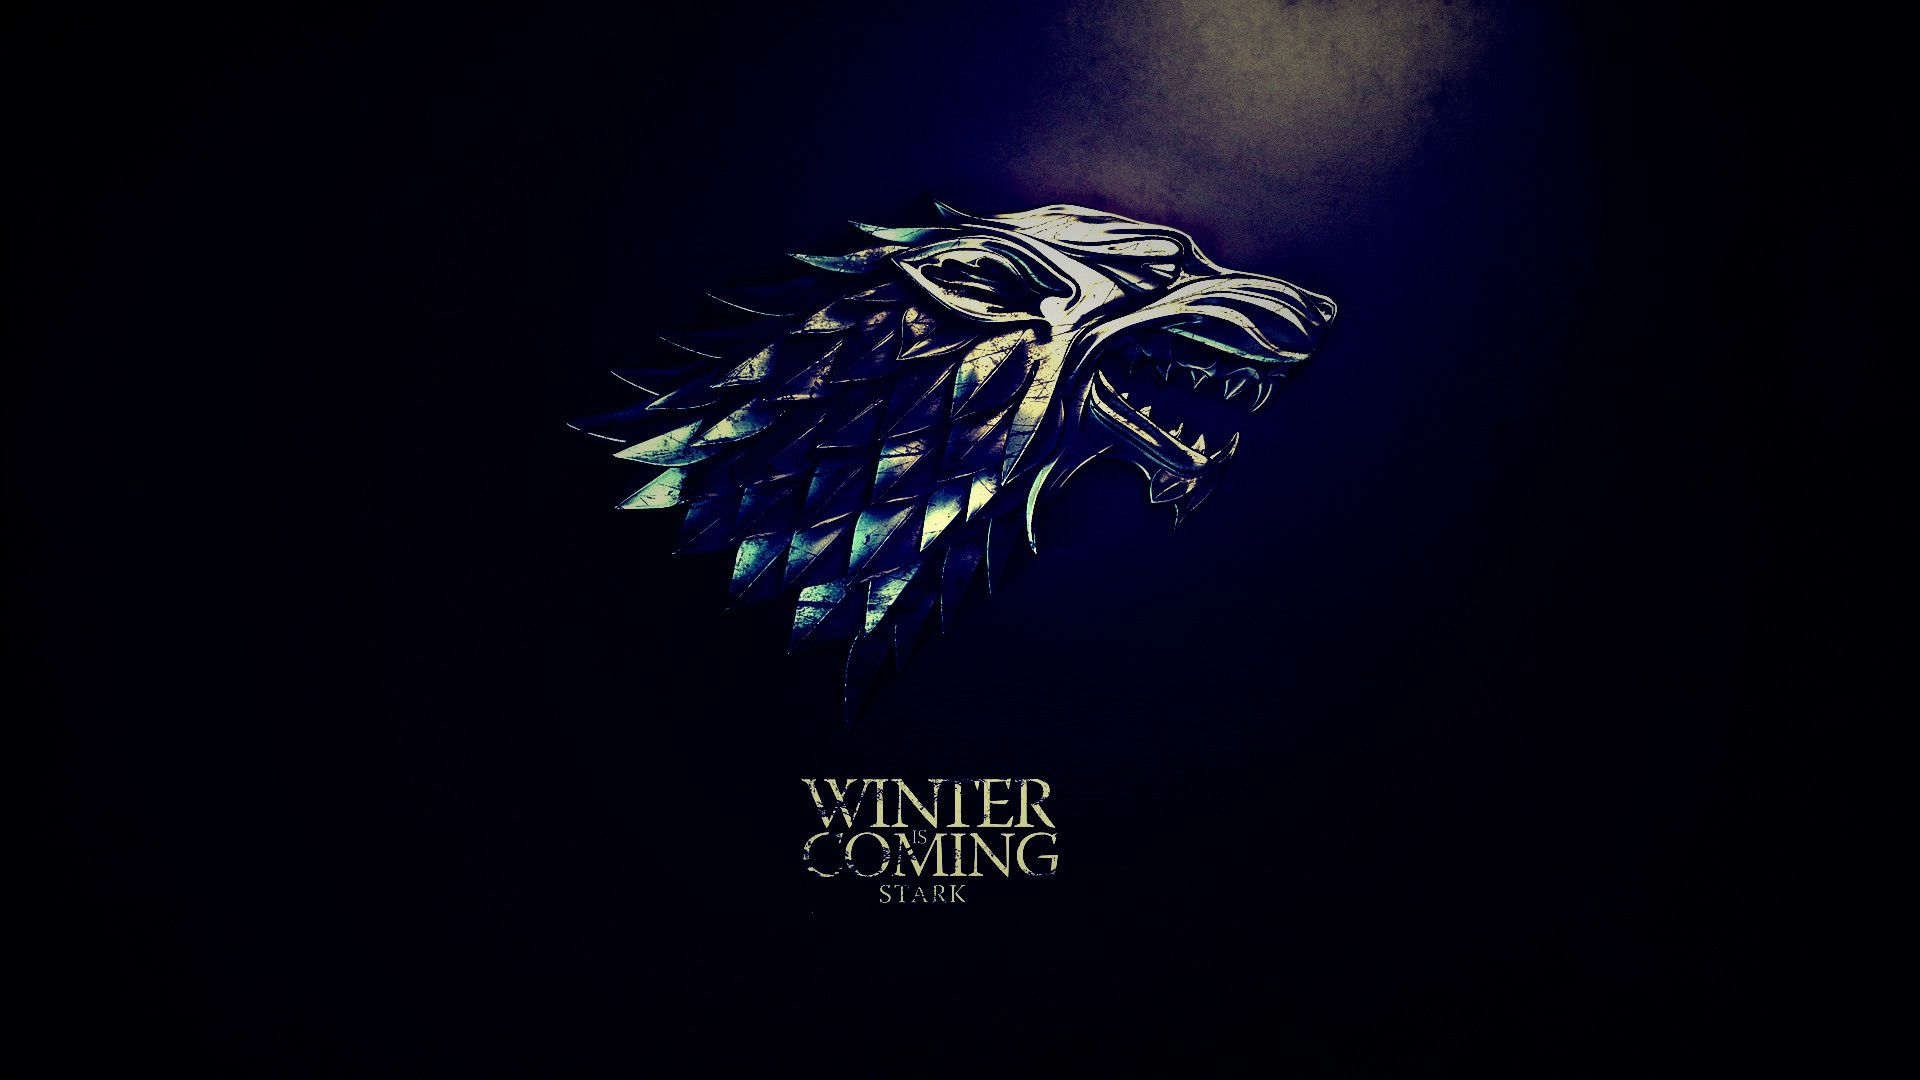 Game Of Thrones Wallpapers 9 Major Houses Westeros